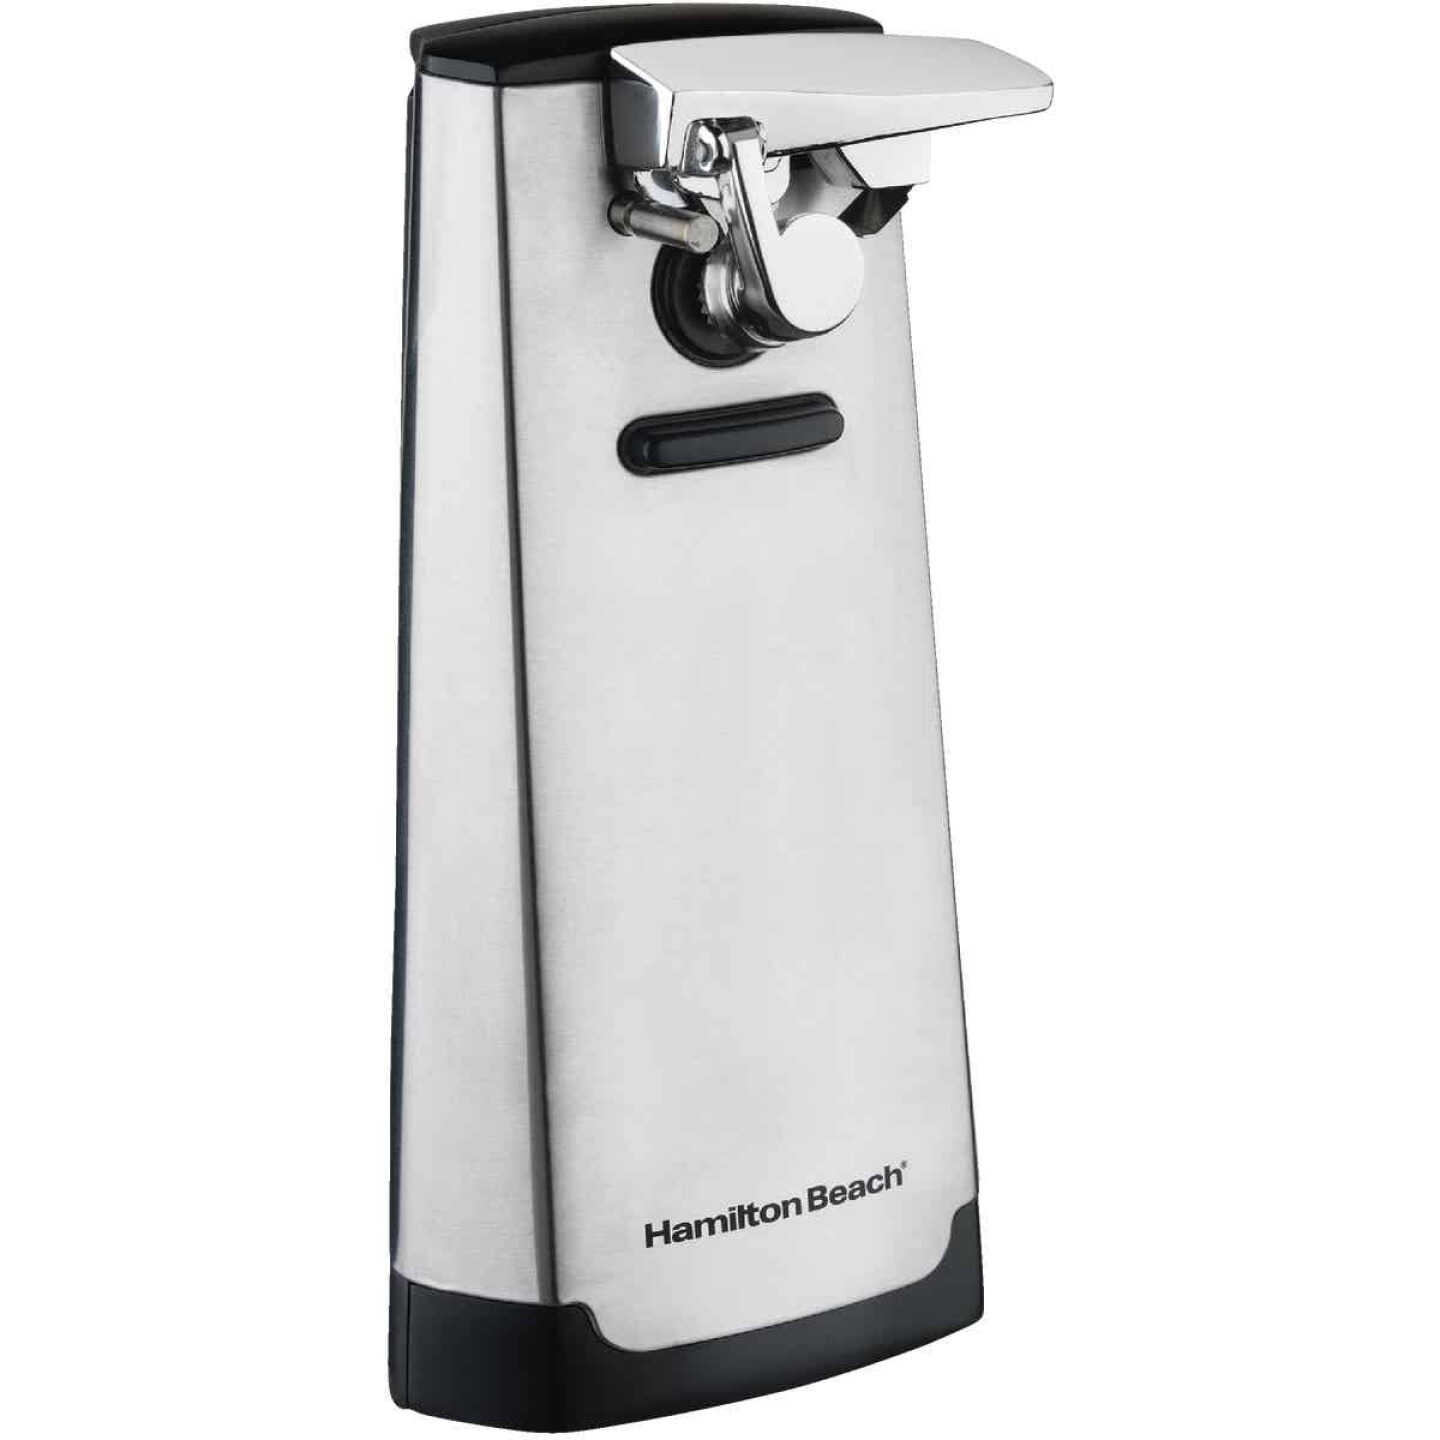 Hamilton Beach Stainless Steel Electric Can Opener Image 1